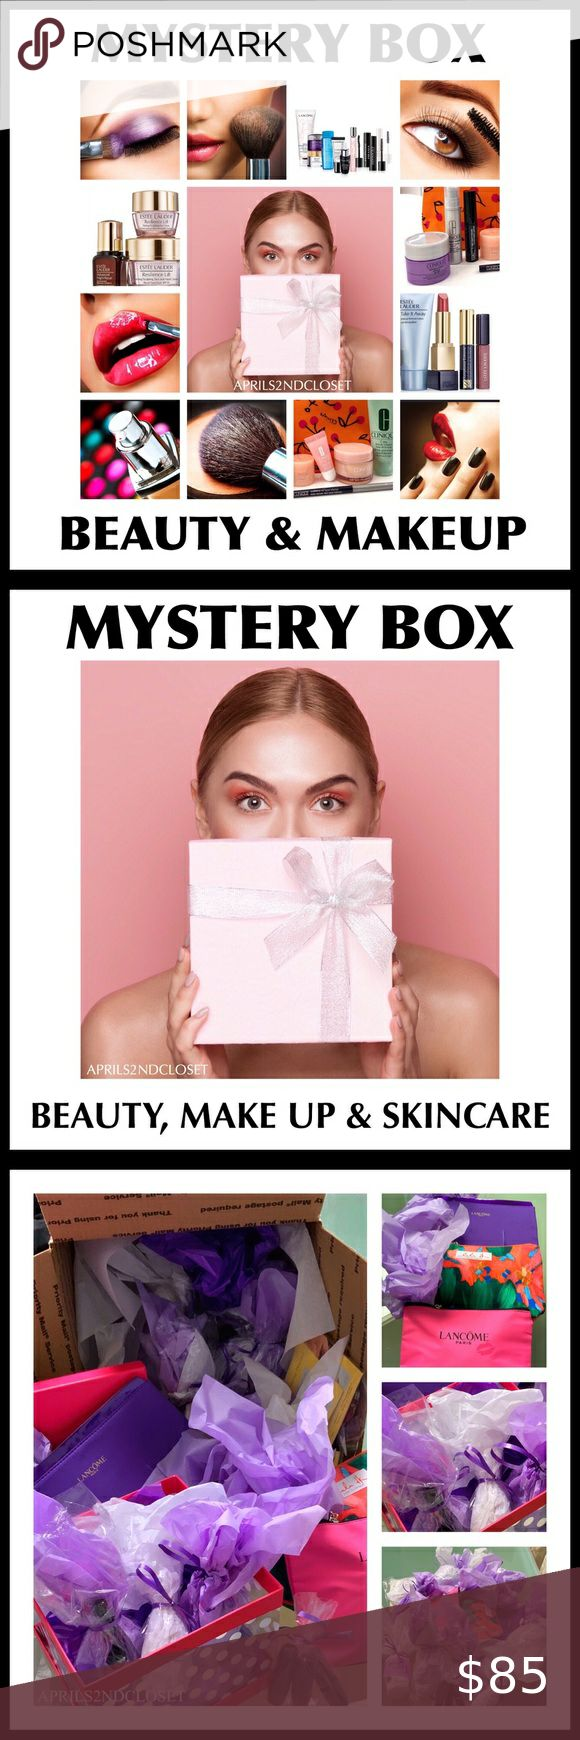 MYSTERY BOX LUXE MAKEUP BEAUTY AND SKINCARE A3C in 2020